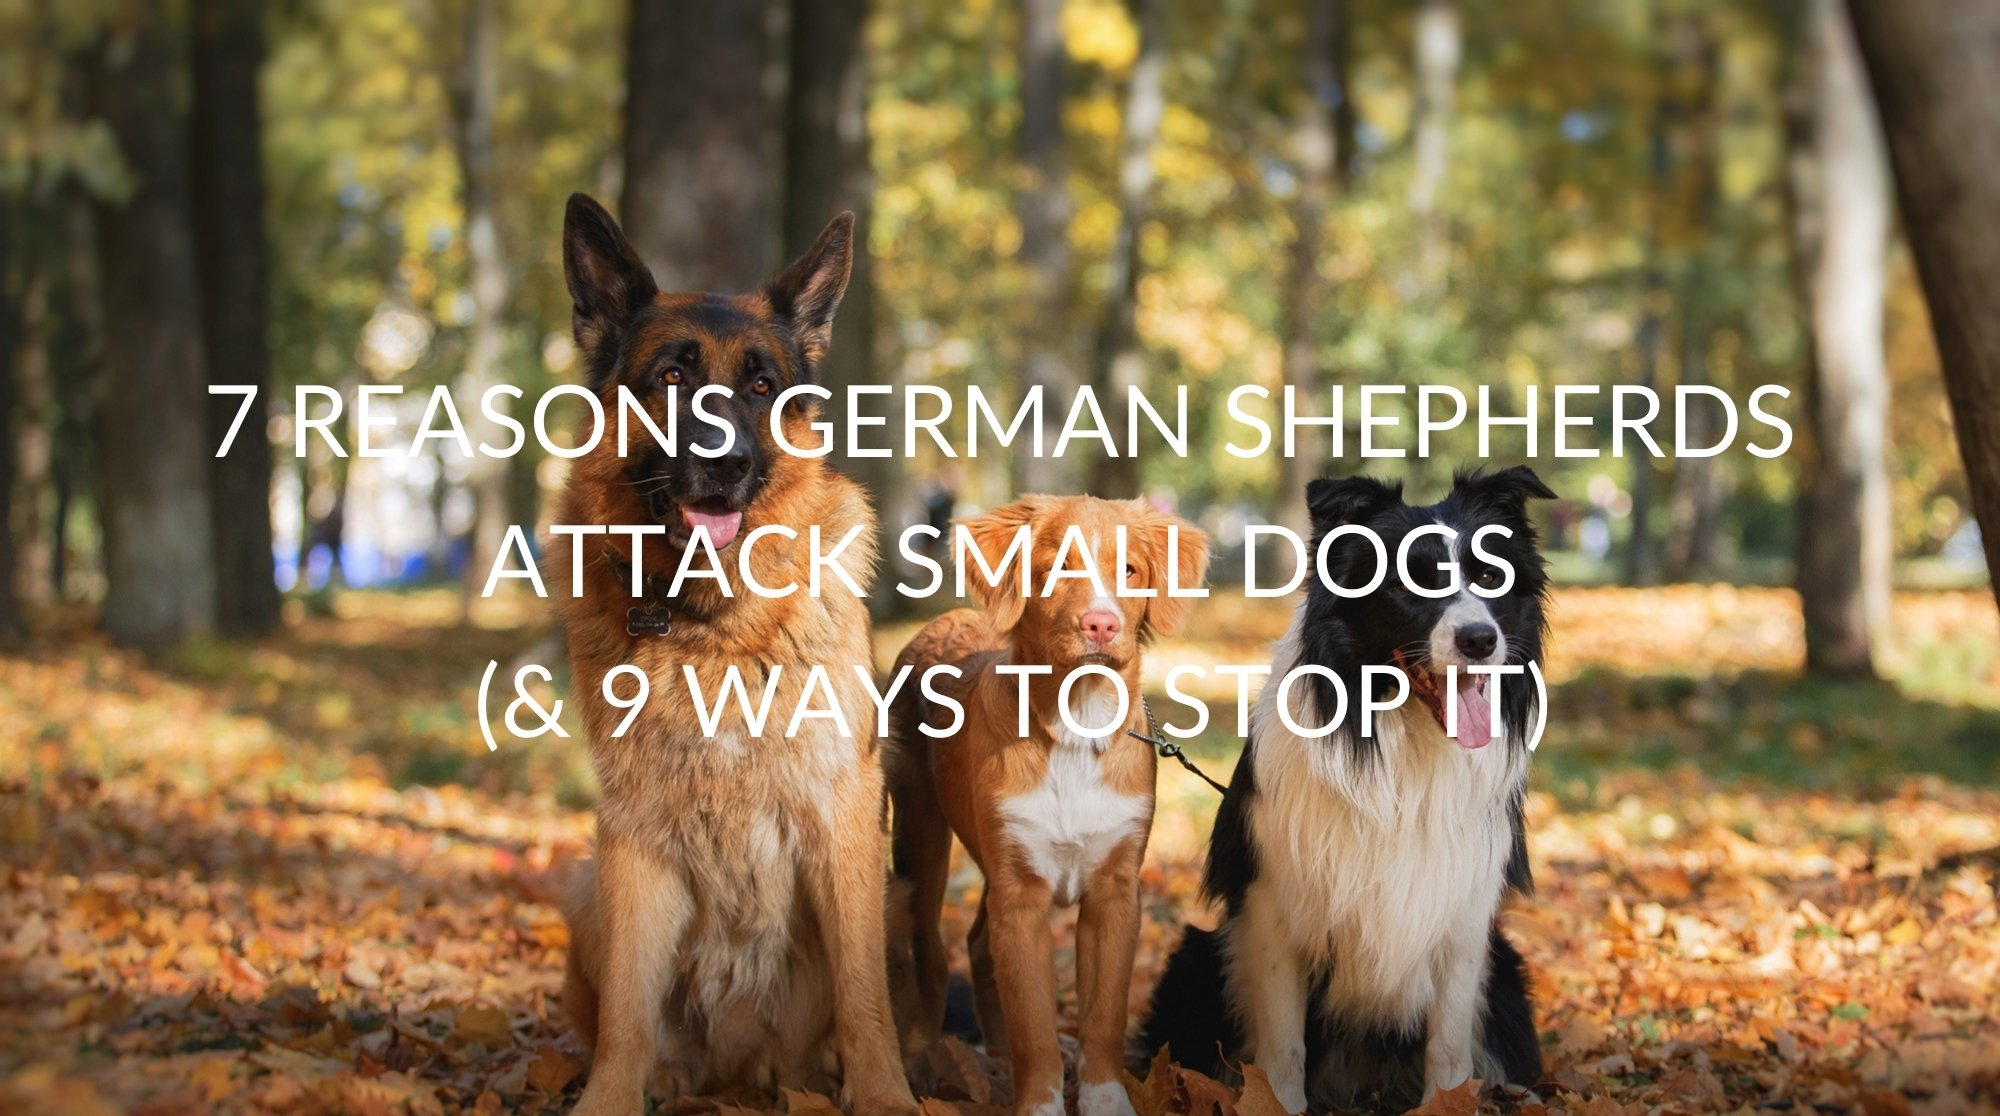 7 Reasons German Shepherds Attack Small Dogs (& 9 Ways To Stop It)